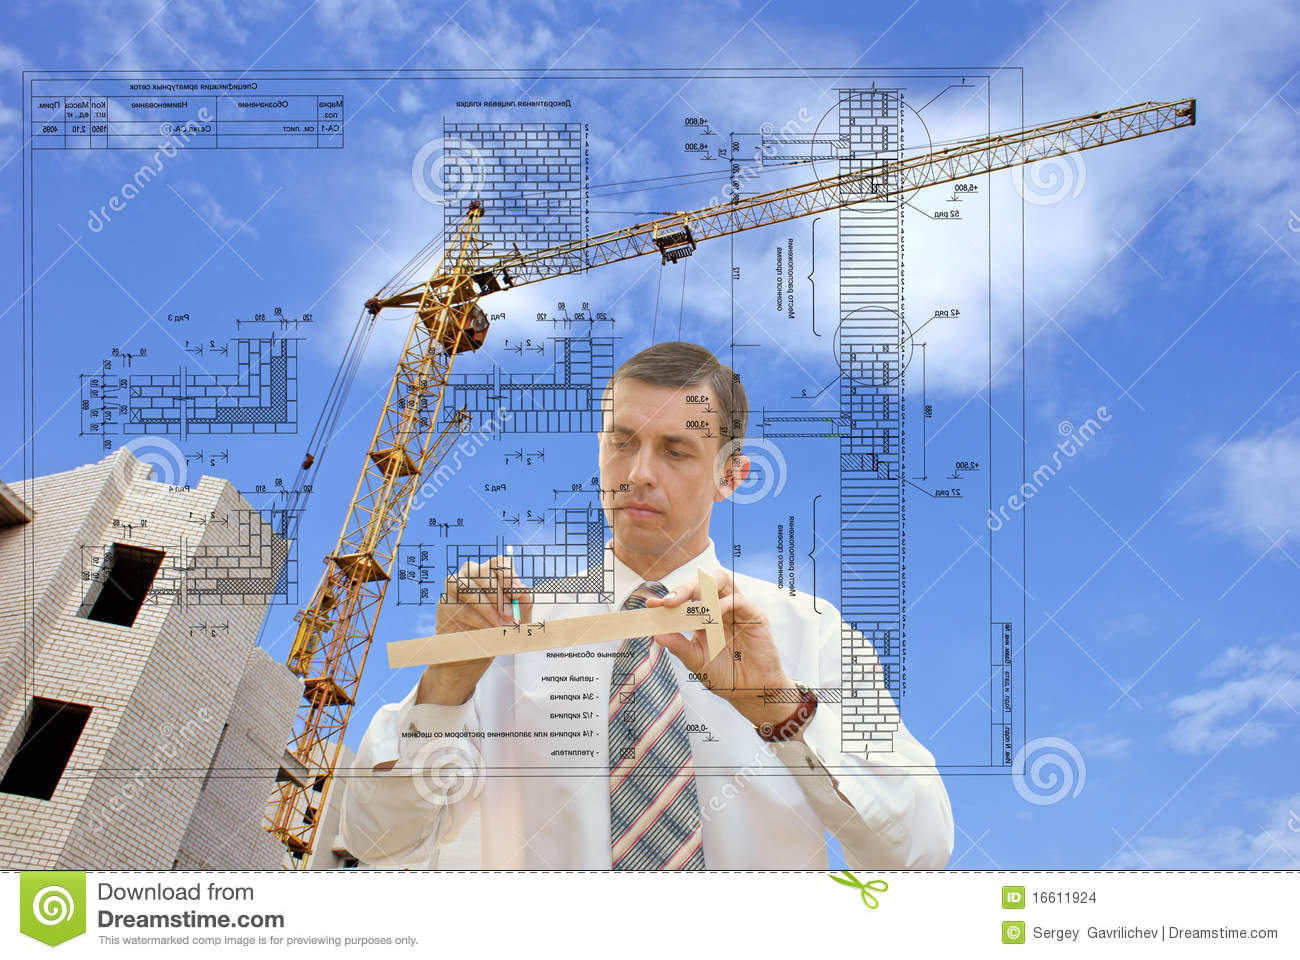 Building Number Sense as well Blank Blueprint Paper furthermore Page7 besides Stock Images Designing Technology Construction Image16611924 together with If I Were Pencil. on crane writing paper